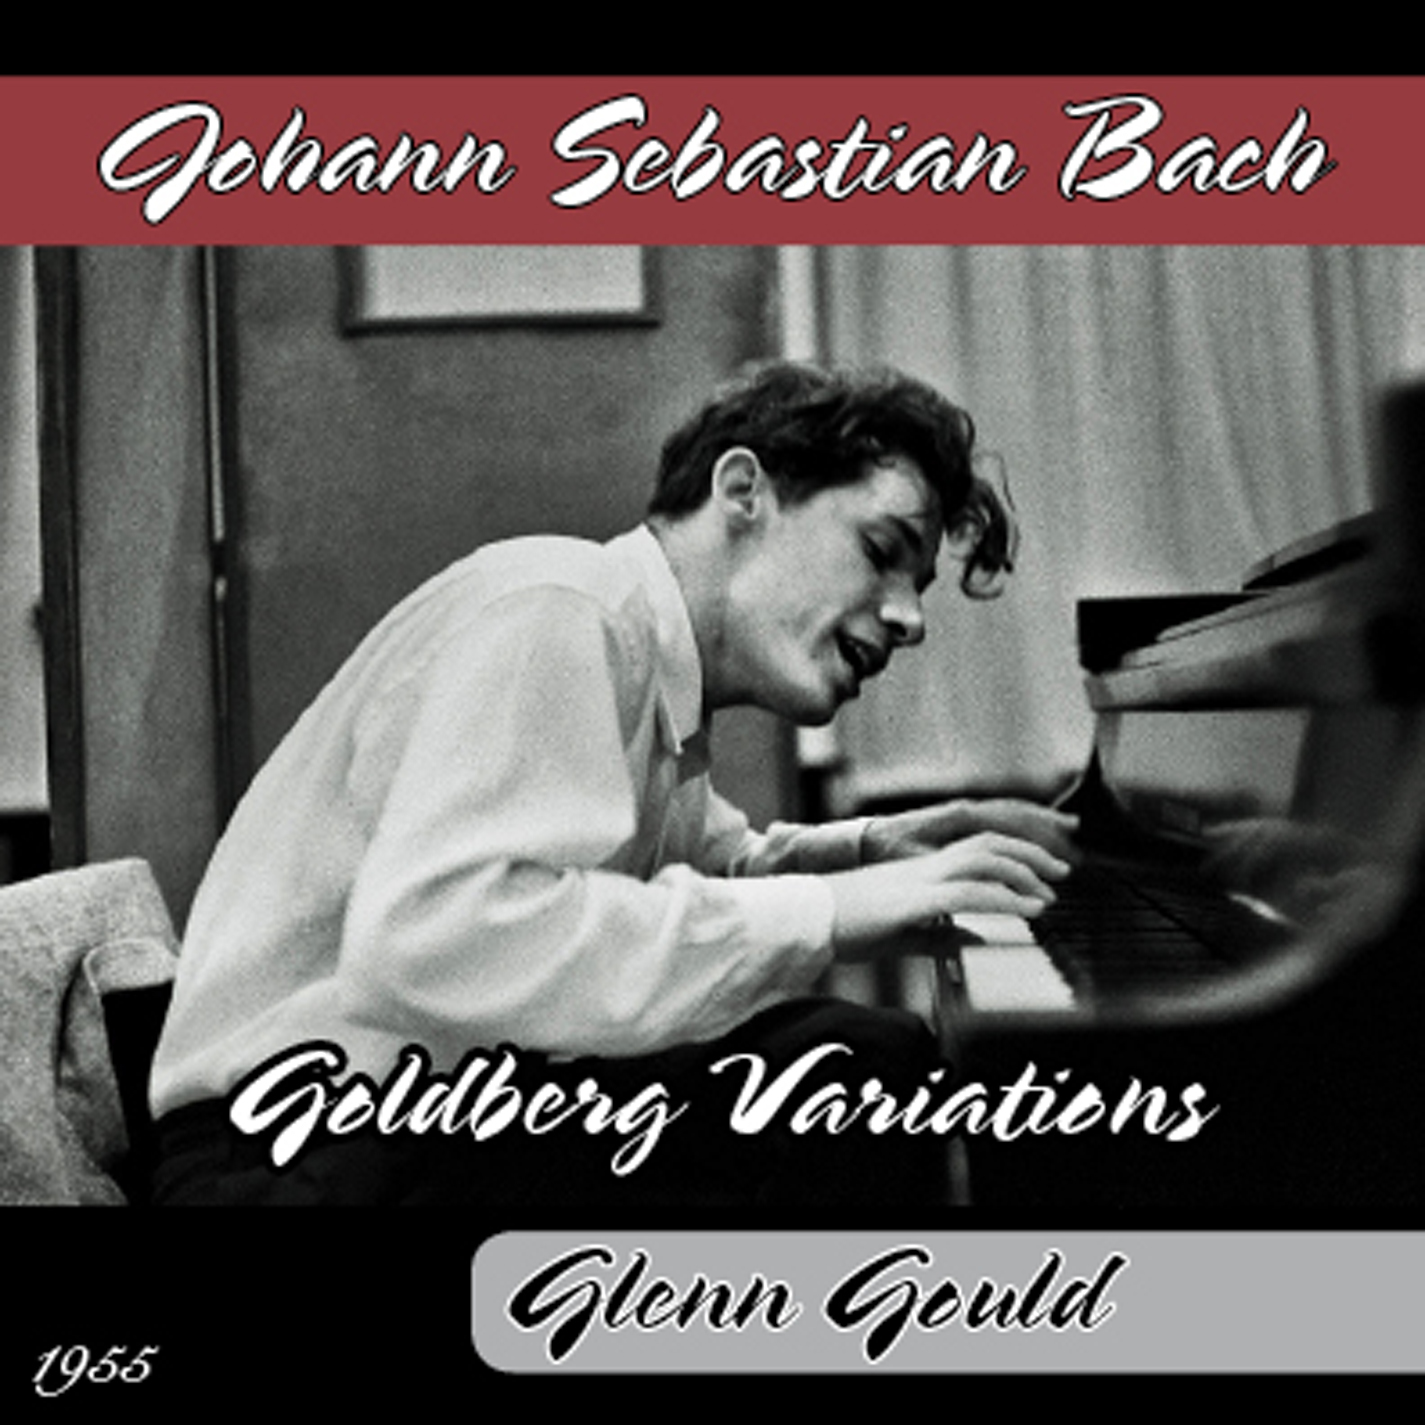 bach goldberg variations gould 1955 cadillac. Black Bedroom Furniture Sets. Home Design Ideas